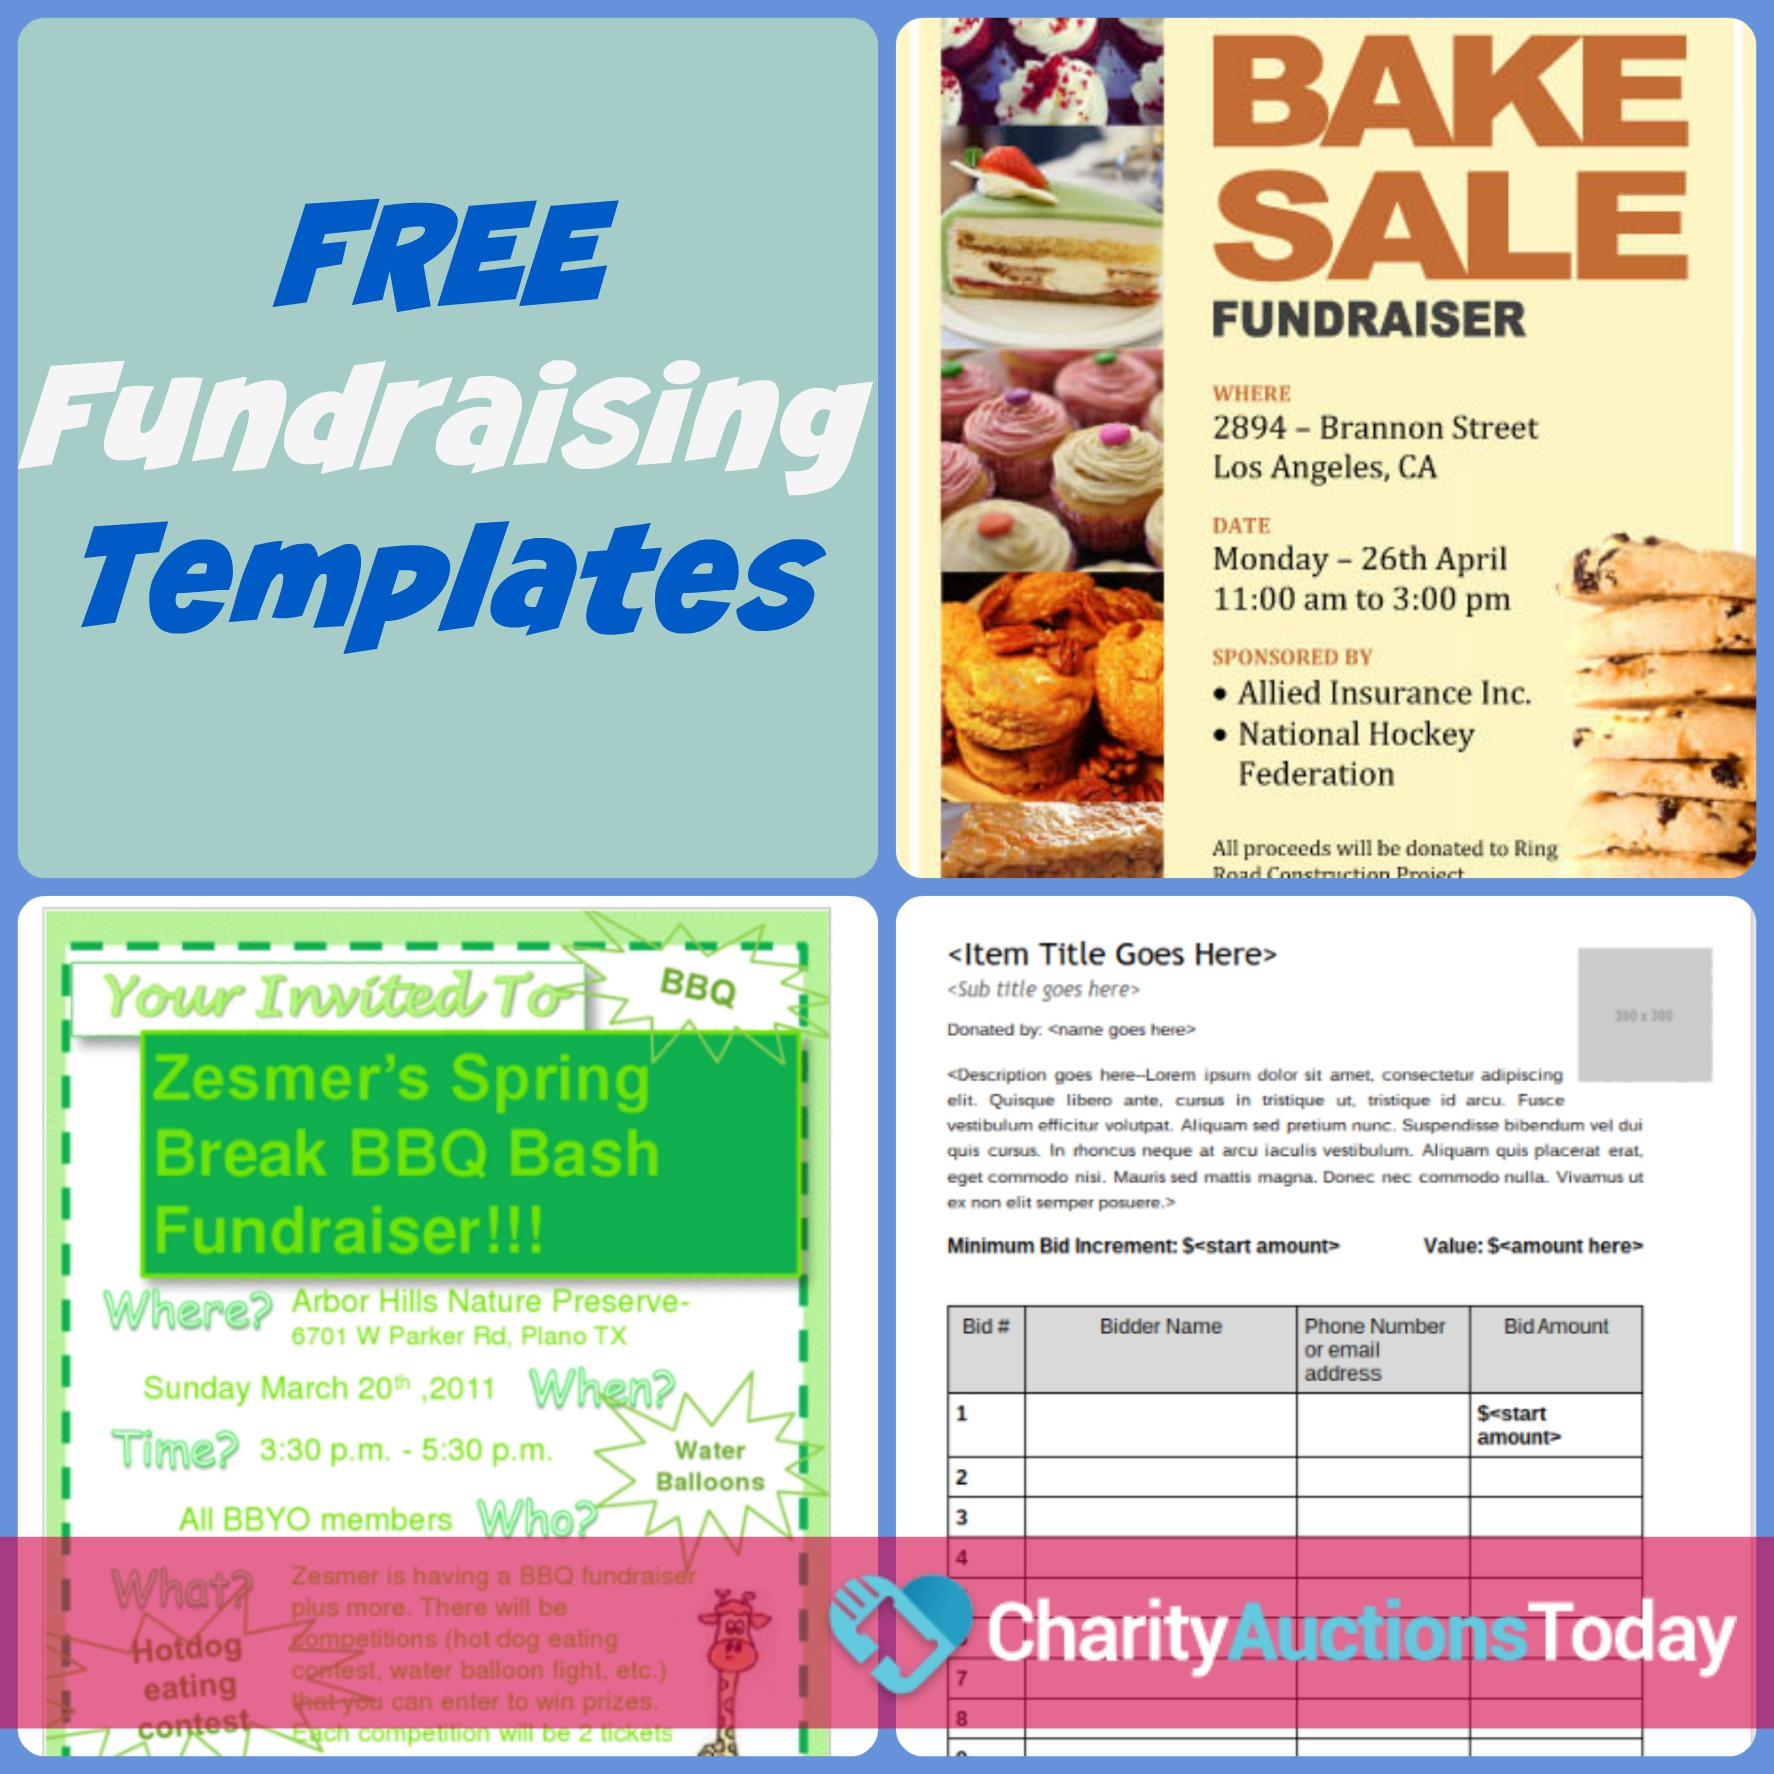 Free Fundraiser Flyer | Charity Auctions Today - Free Printable Flyer Maker